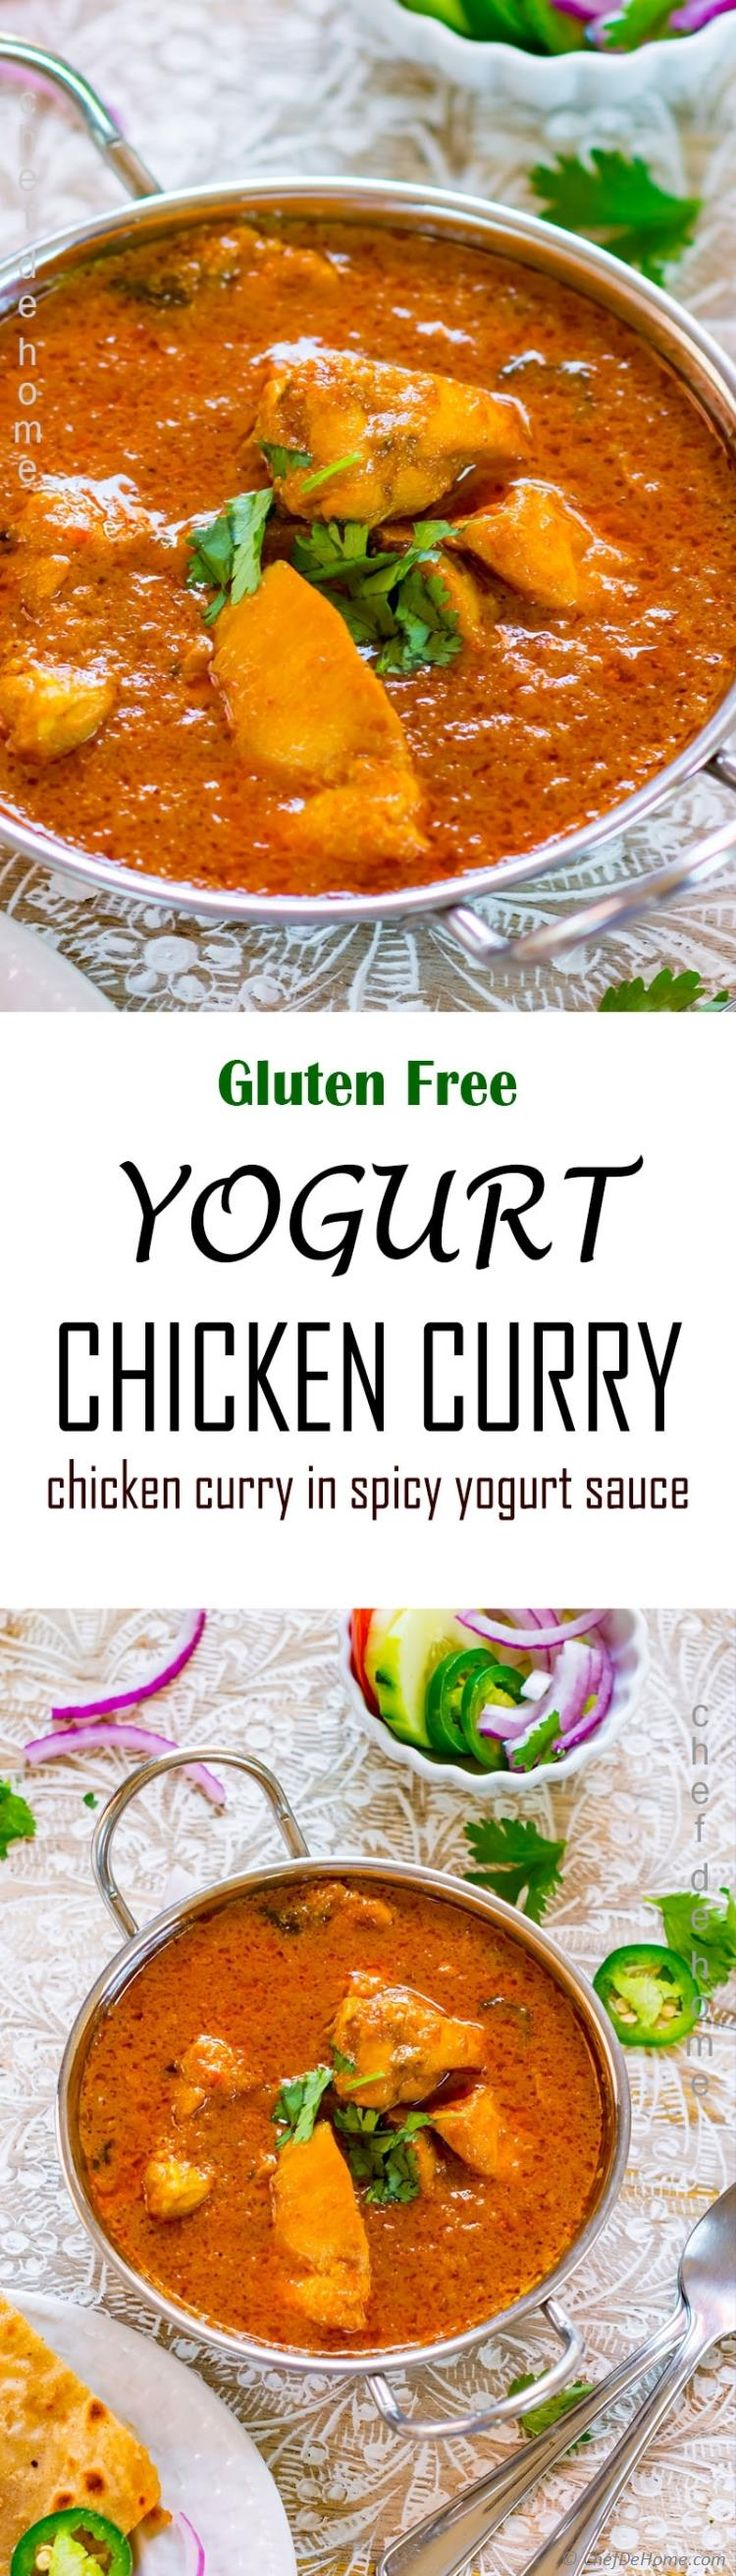 Yogurt Chicken Curry! The chicken curry from Northern India which is must try for every Indian food lover.